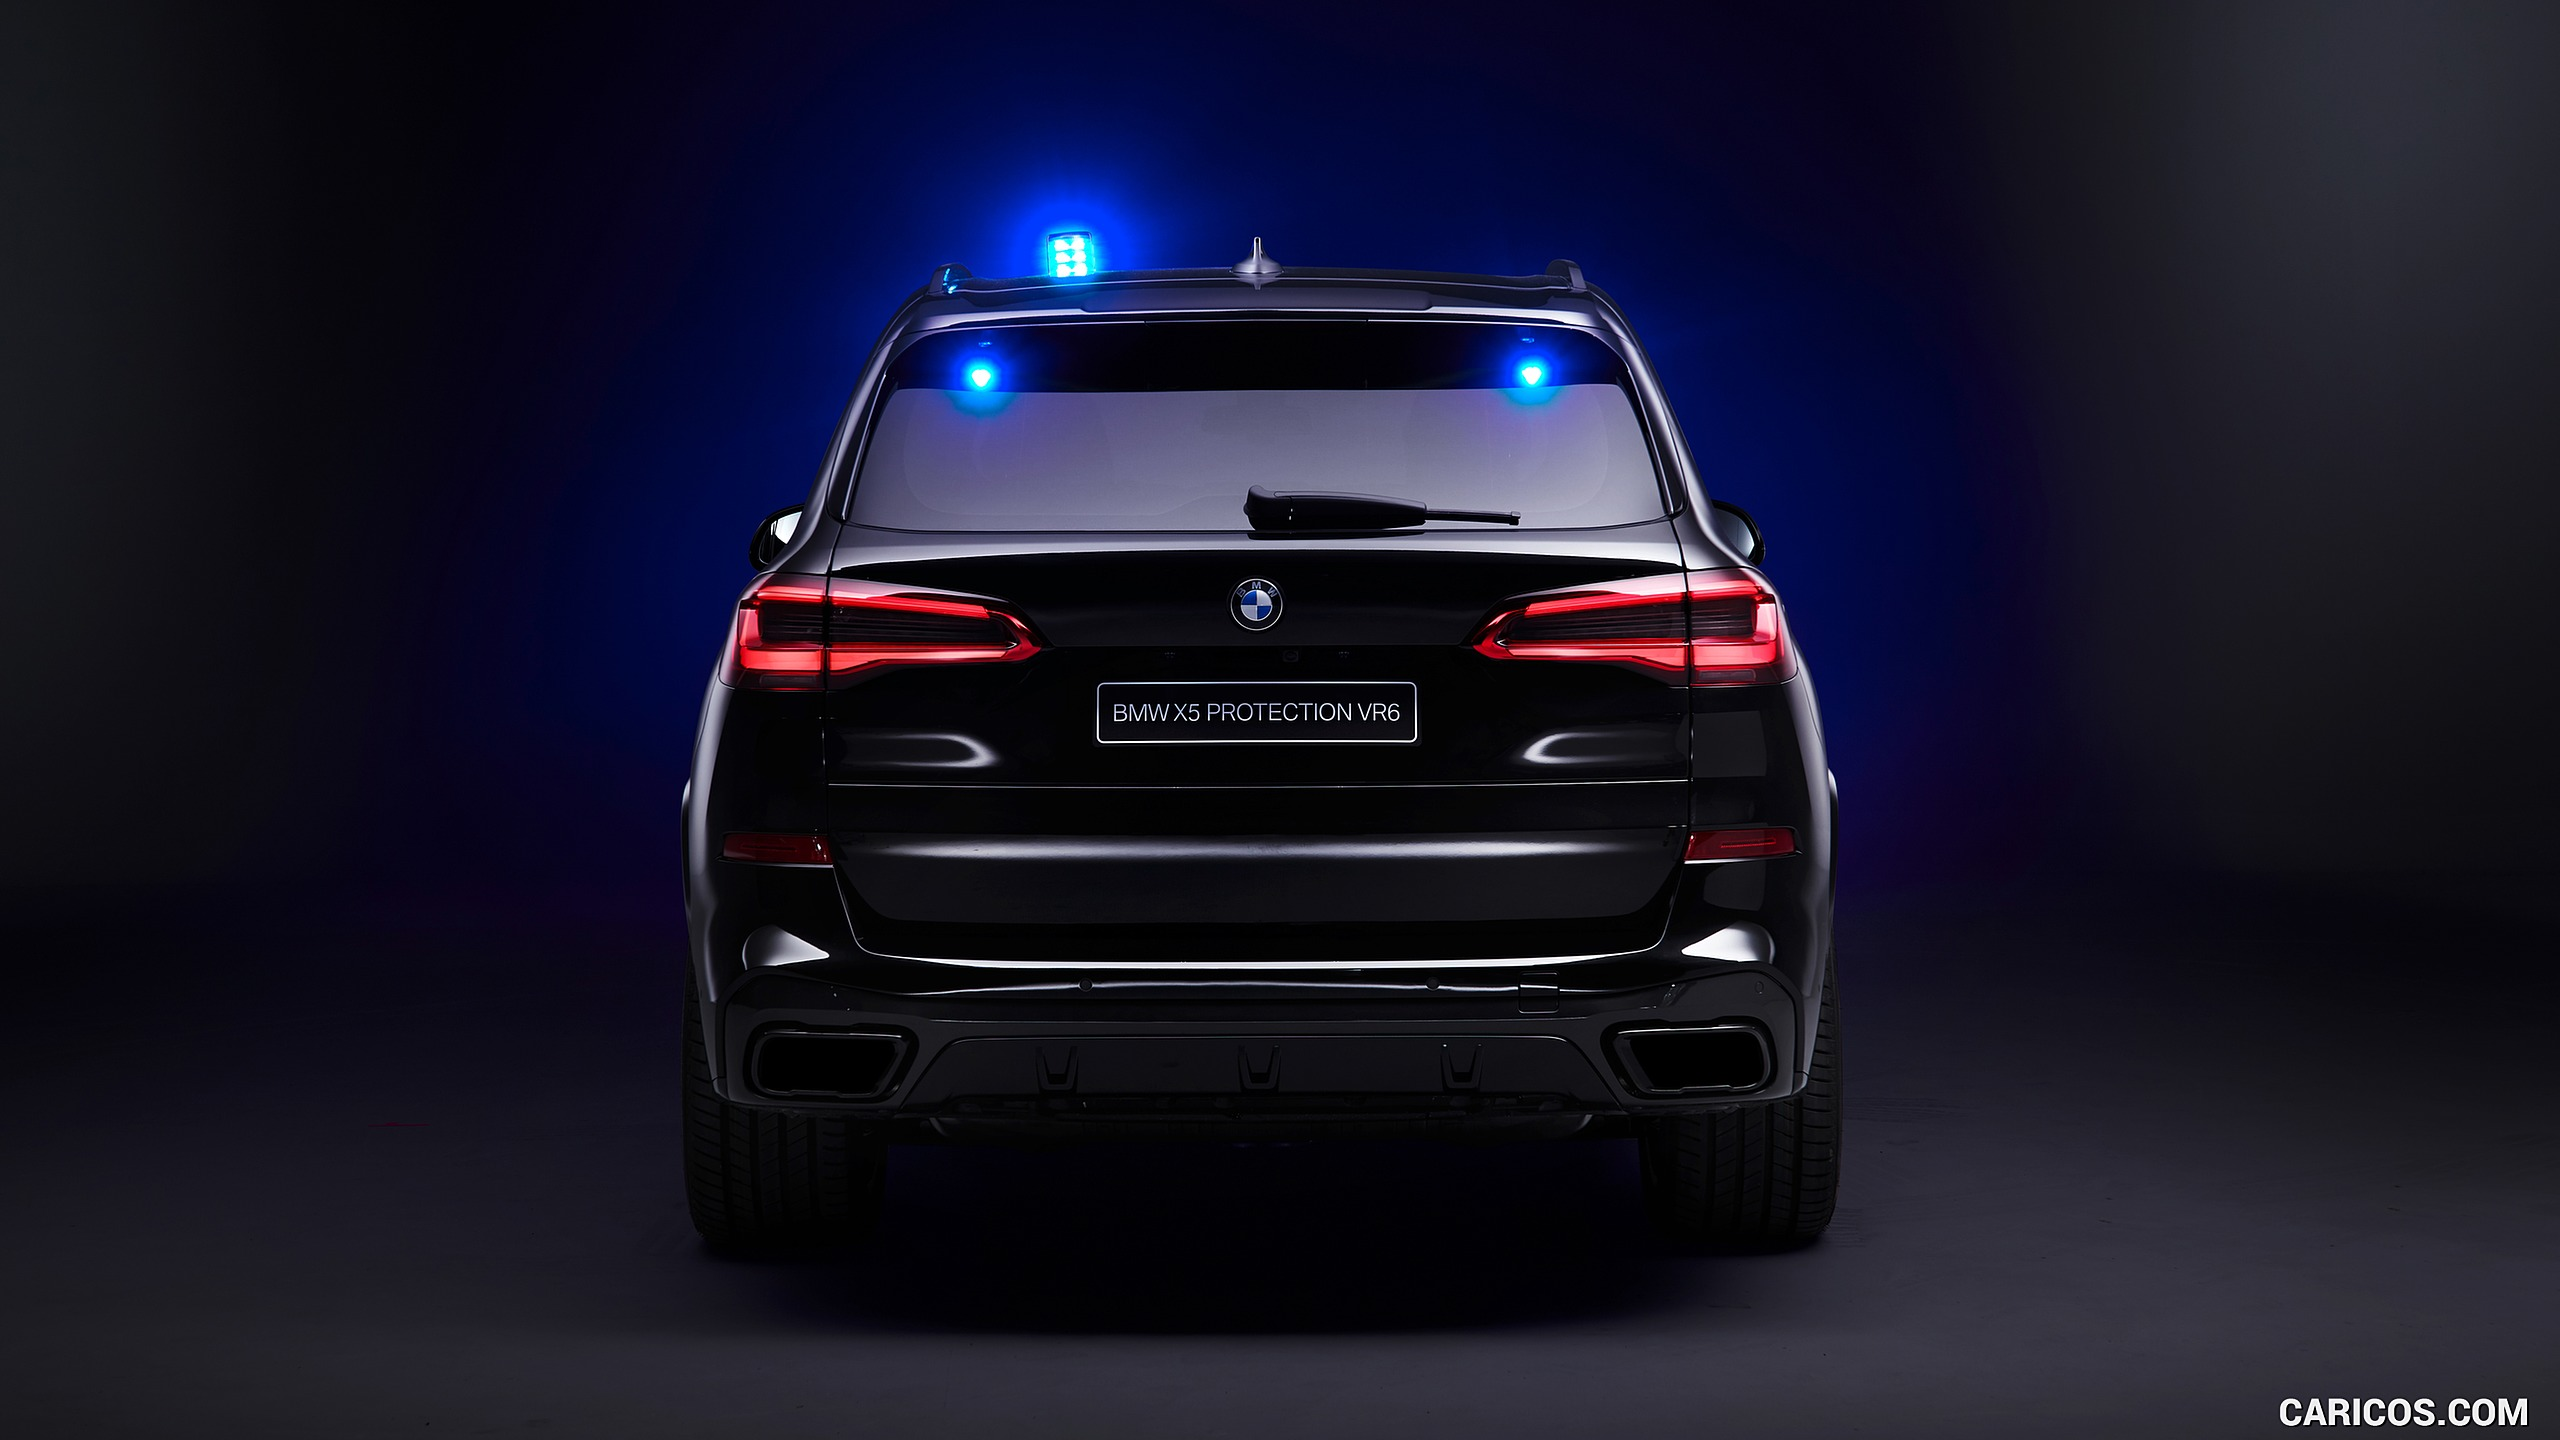 2020 BMW X5 Protection VR6 Armored Vehicle   Rear HD Wallpaper 14 2560x1440